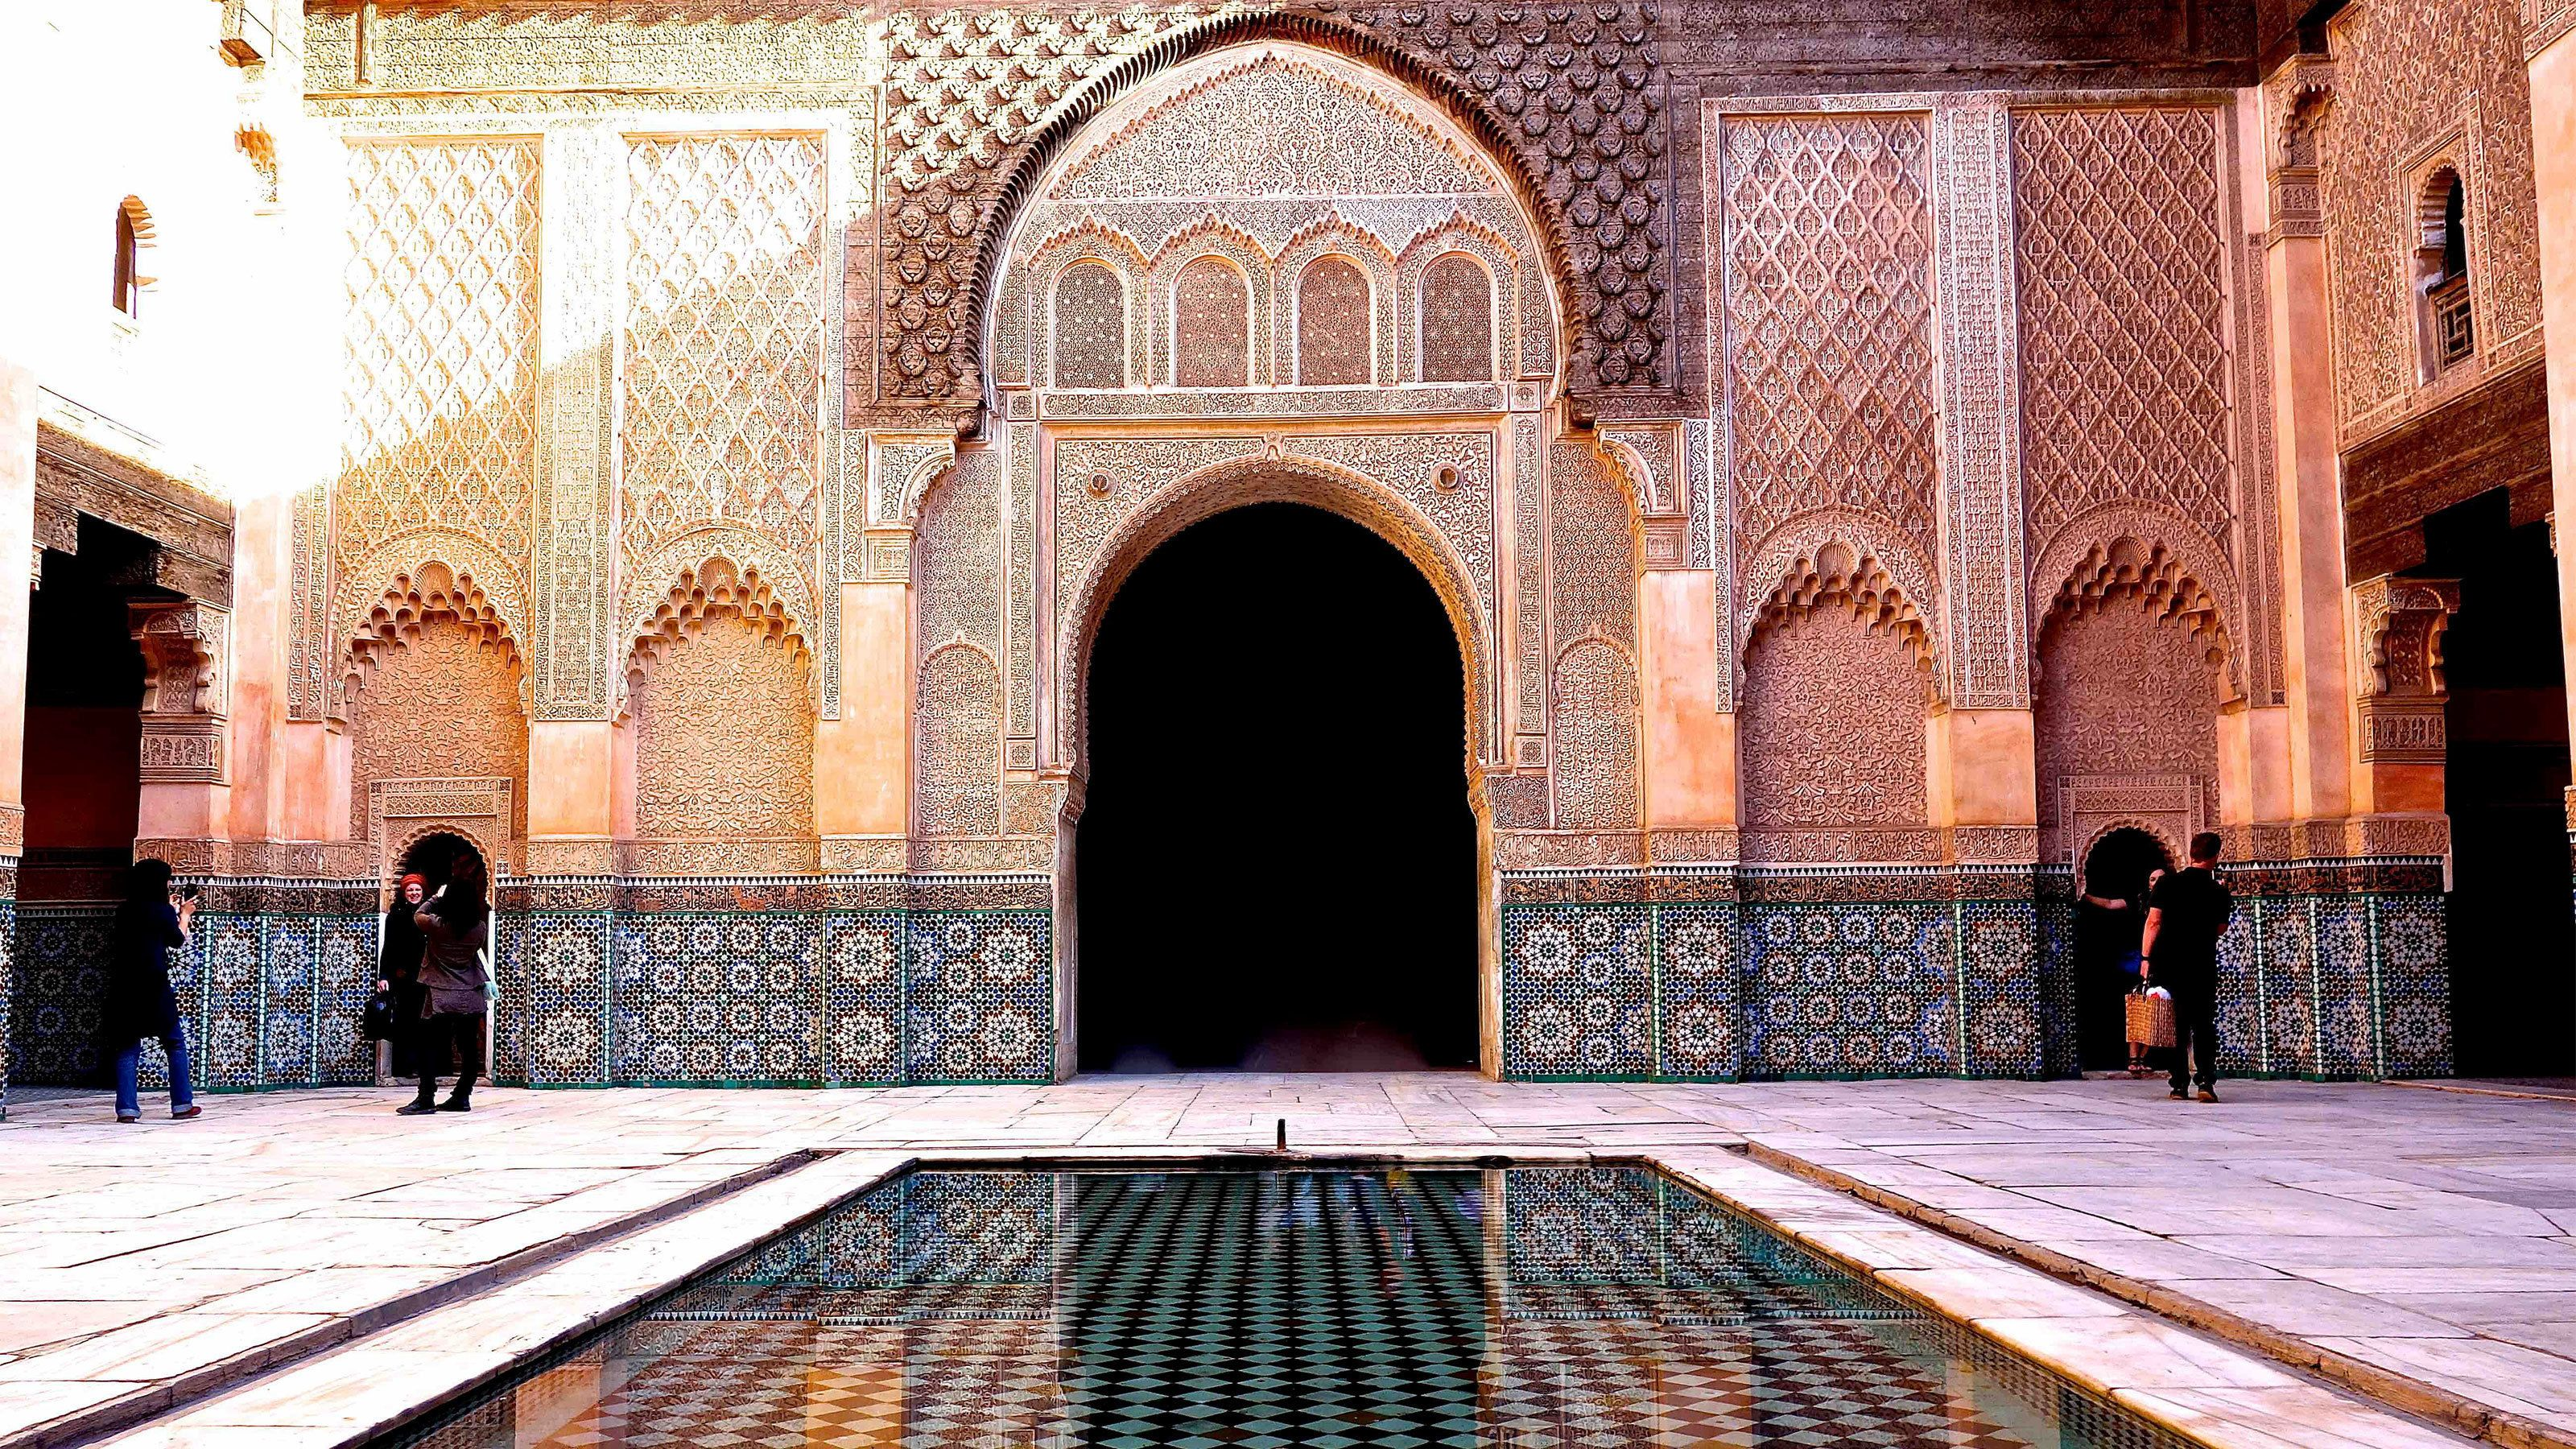 Bahia Palace mosaic courtyard and reflecting pool in Marrakech